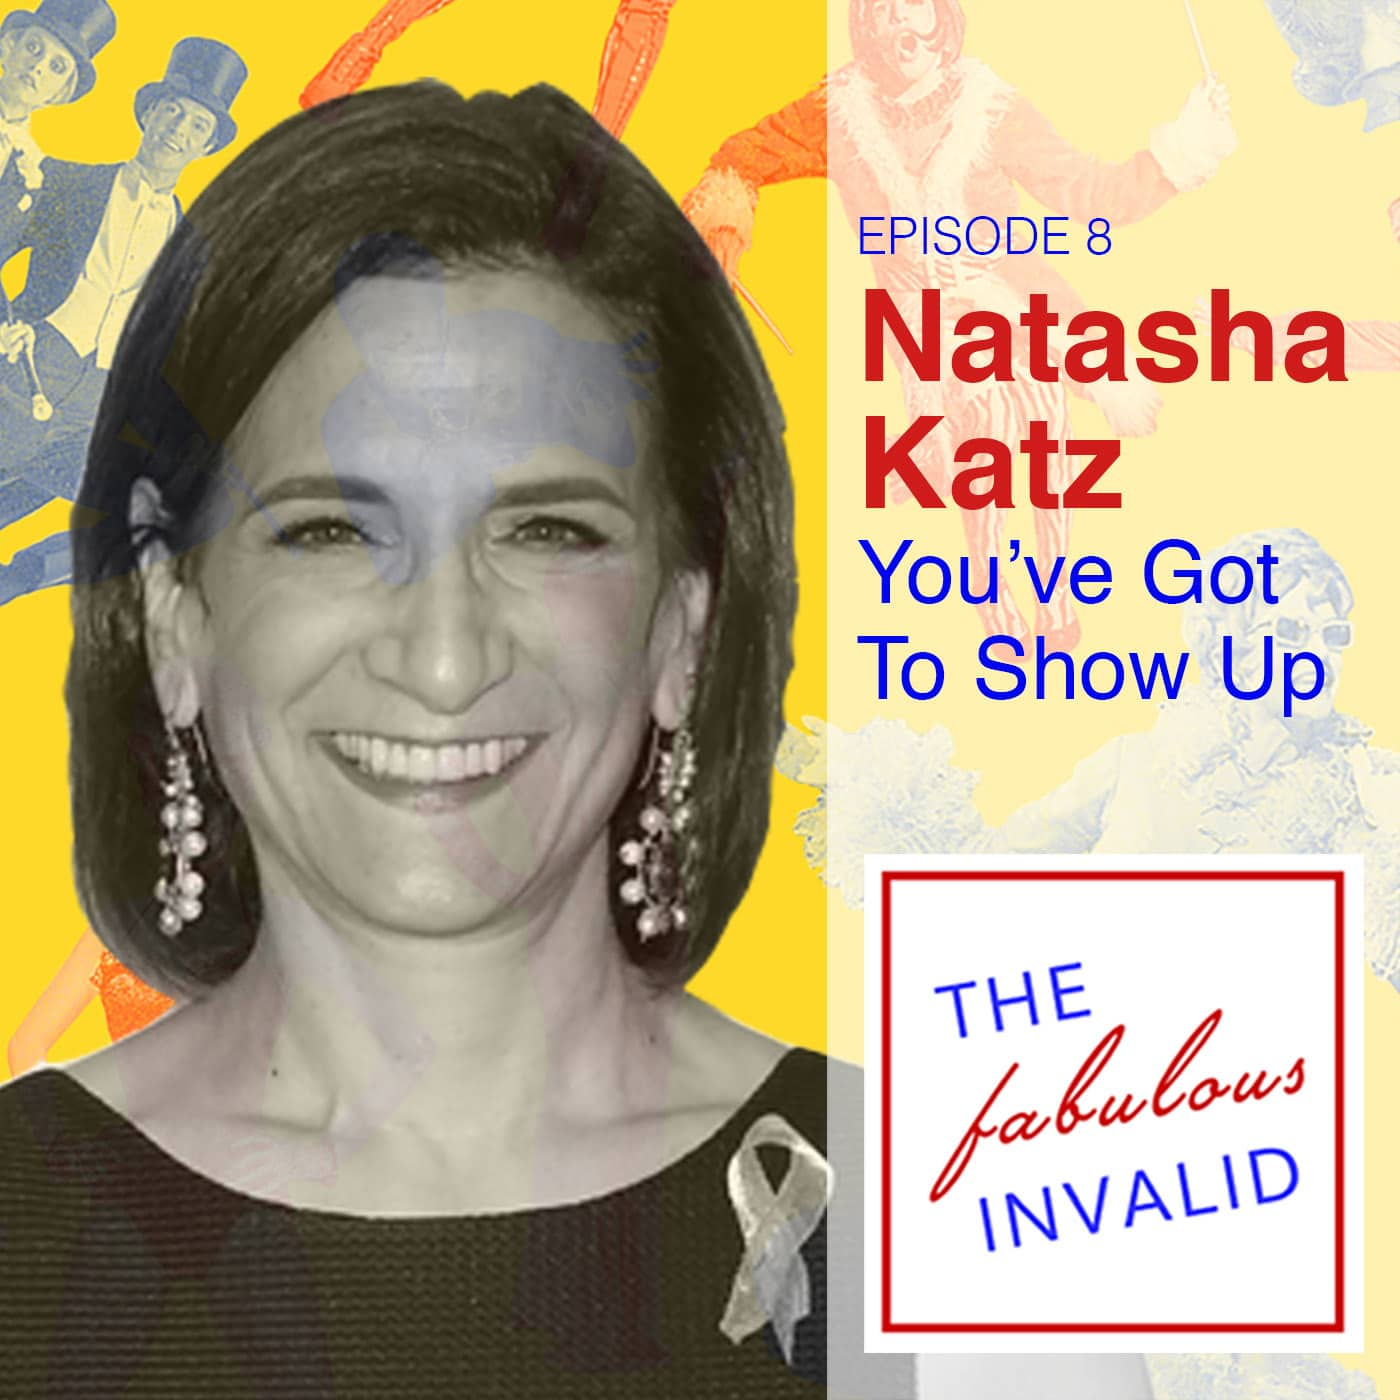 The Fabulous Invalid Ep 8 Natasha Katz